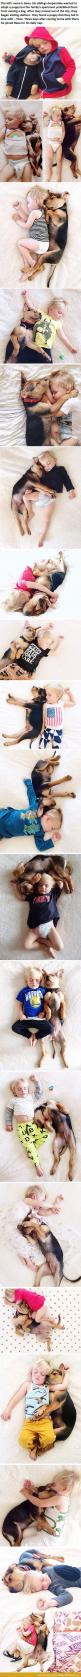 this. is. adorable.: Cuteness Overload, Sweet, Dogs, Pet, Puppys, Babys And Puppies, Friend, Kid